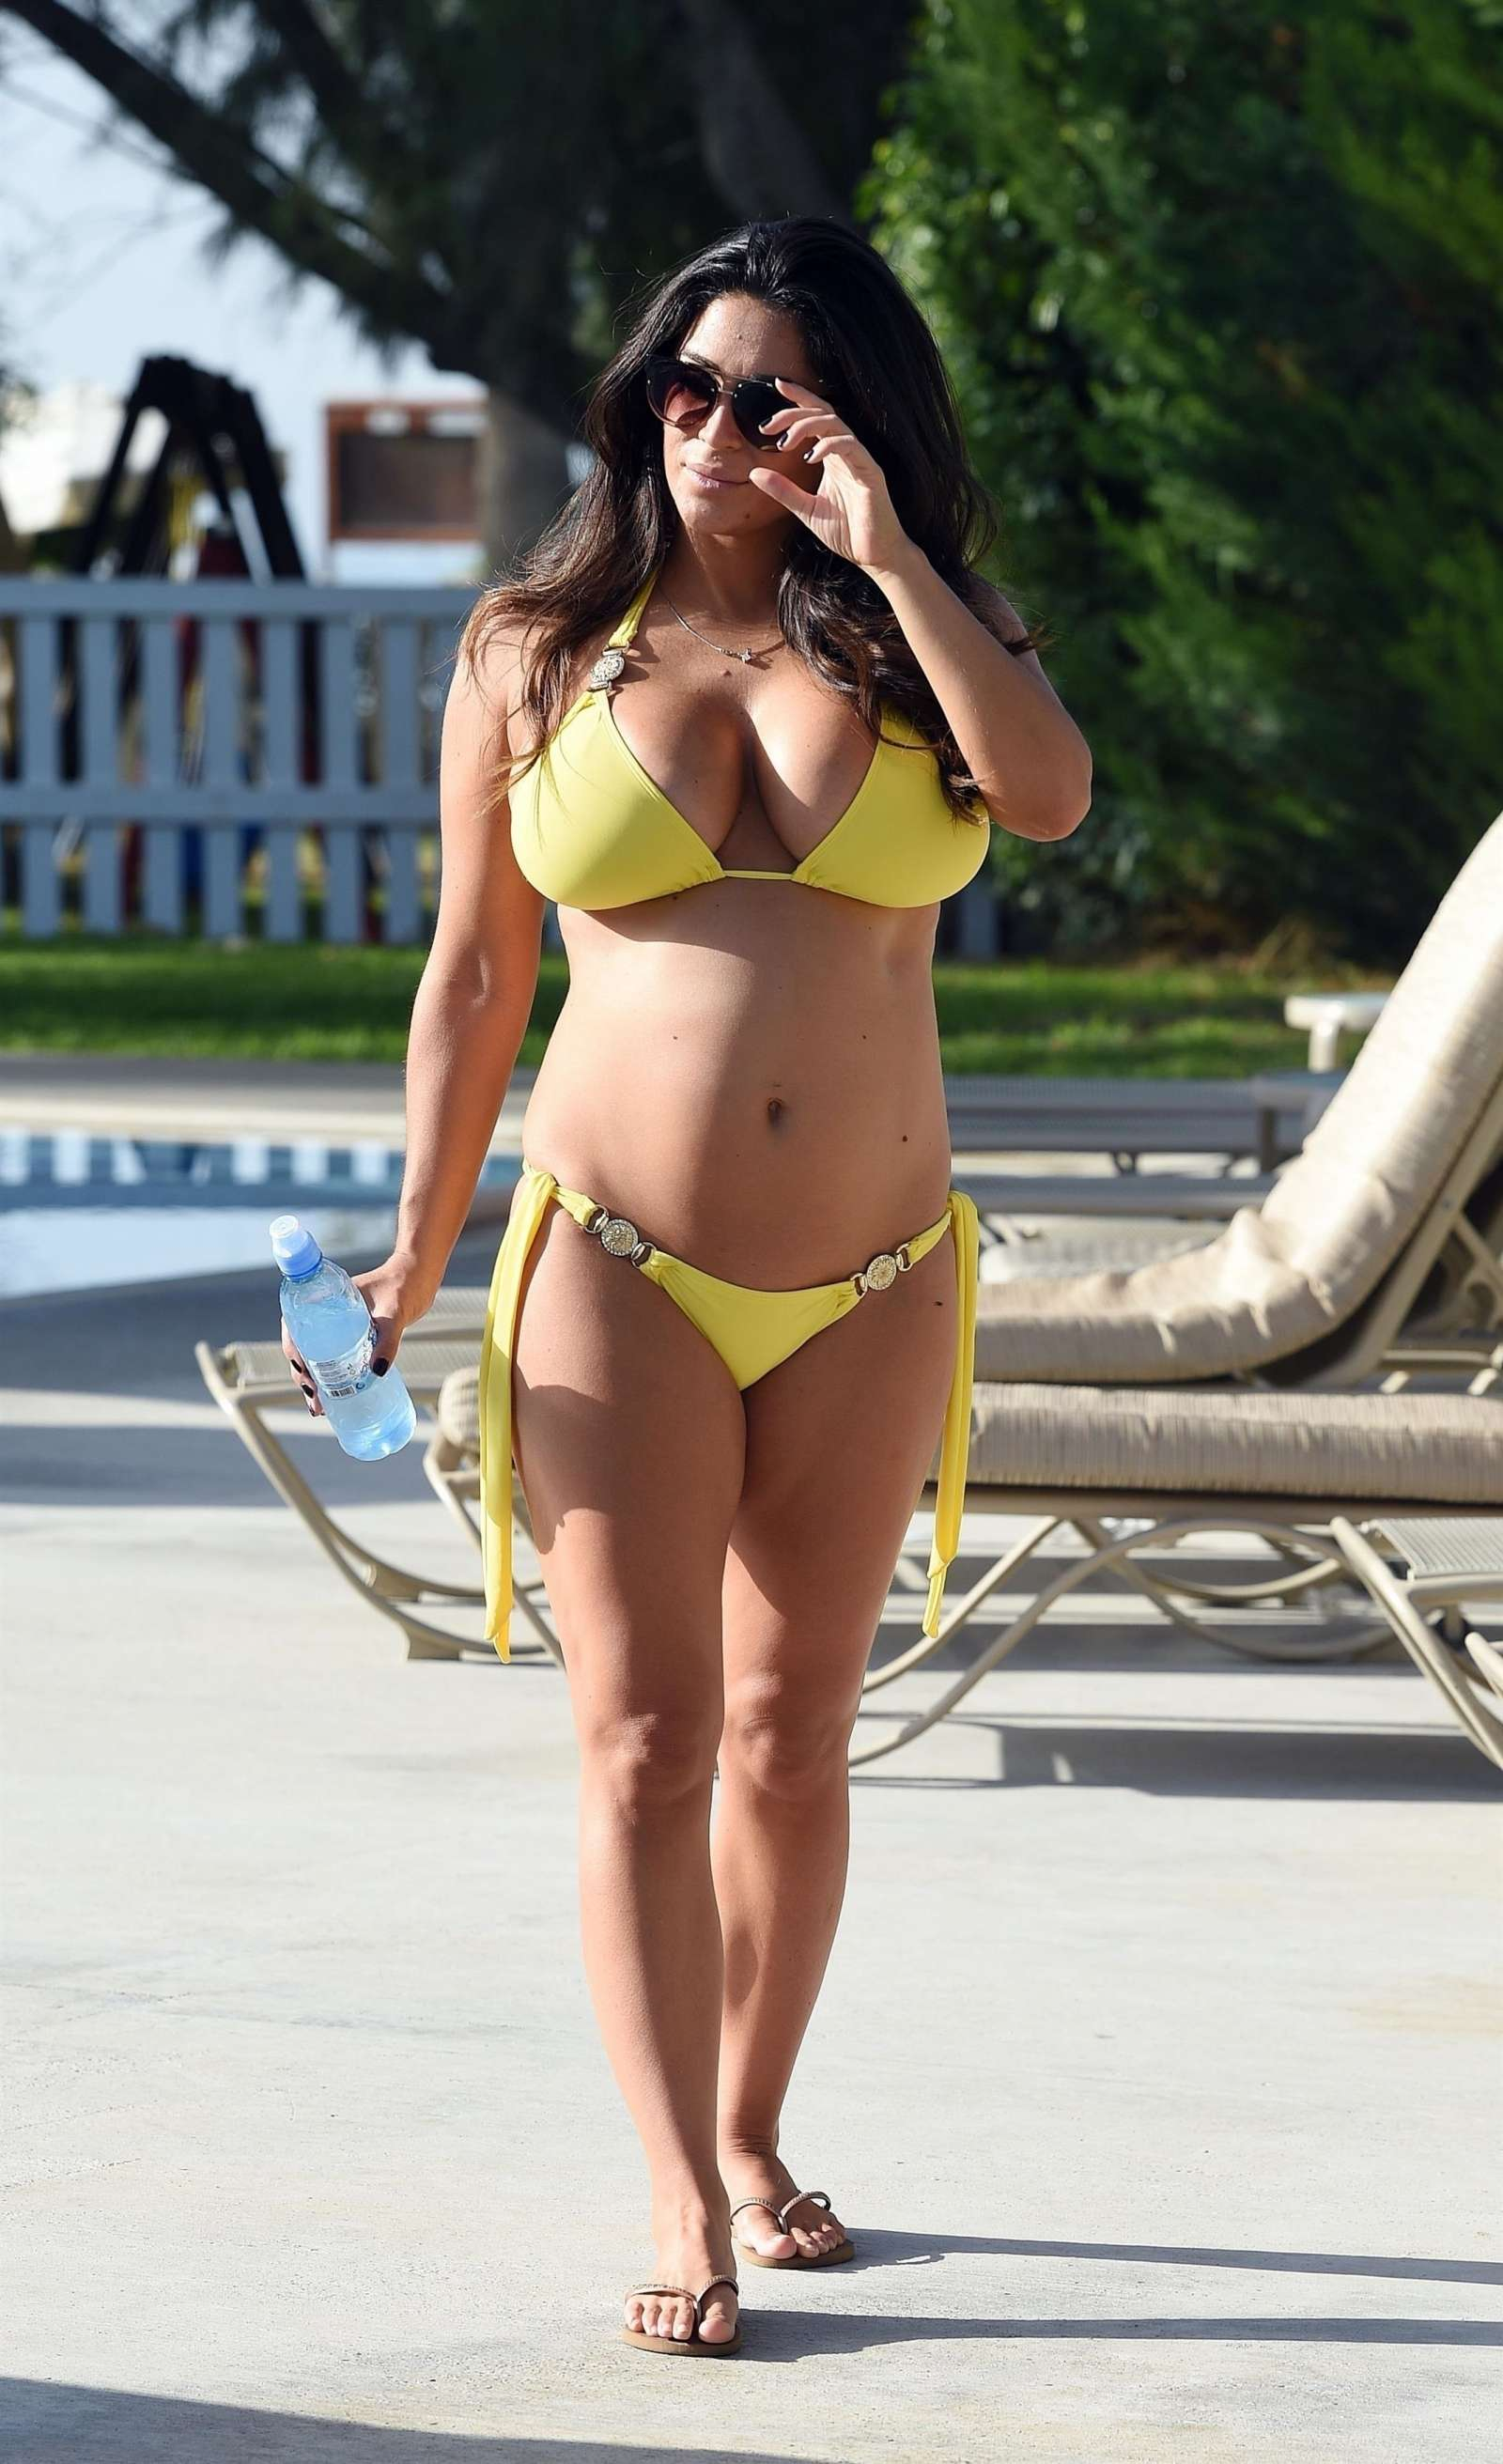 Casey Batchelor in Bikini on the pool in Cyprus Pic 6 of 35